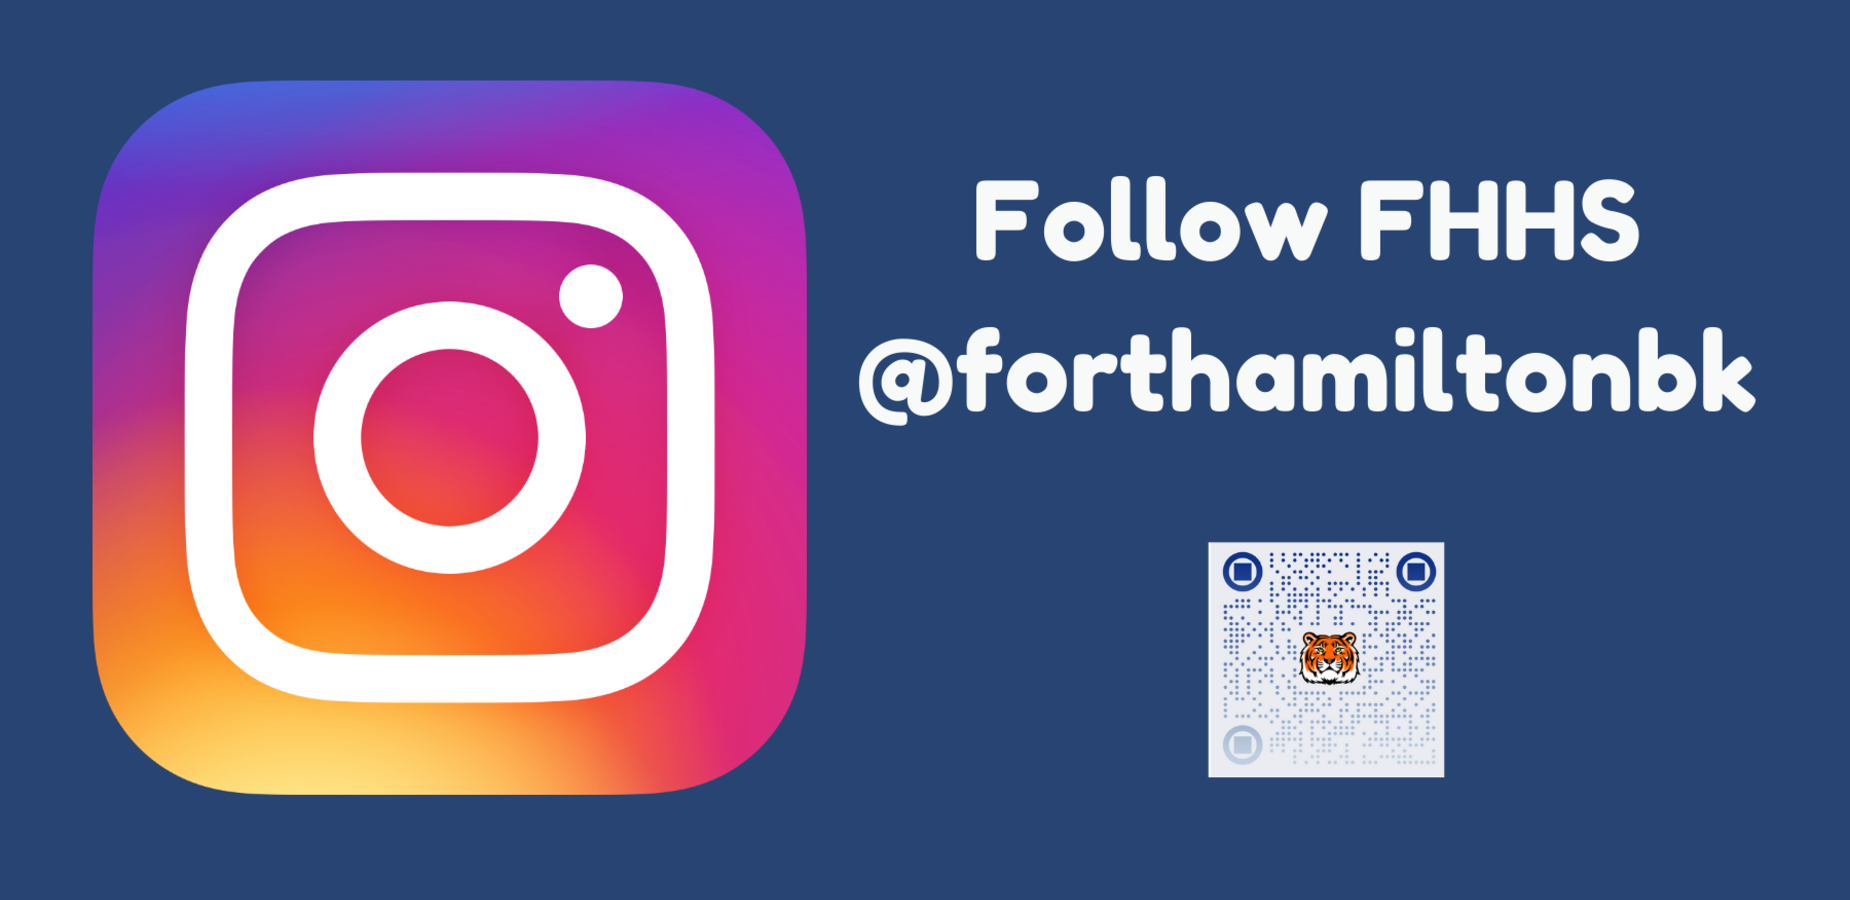 Follow FHHS @forthamiltonbk.  Instagram logo to the left and a QR code beneath